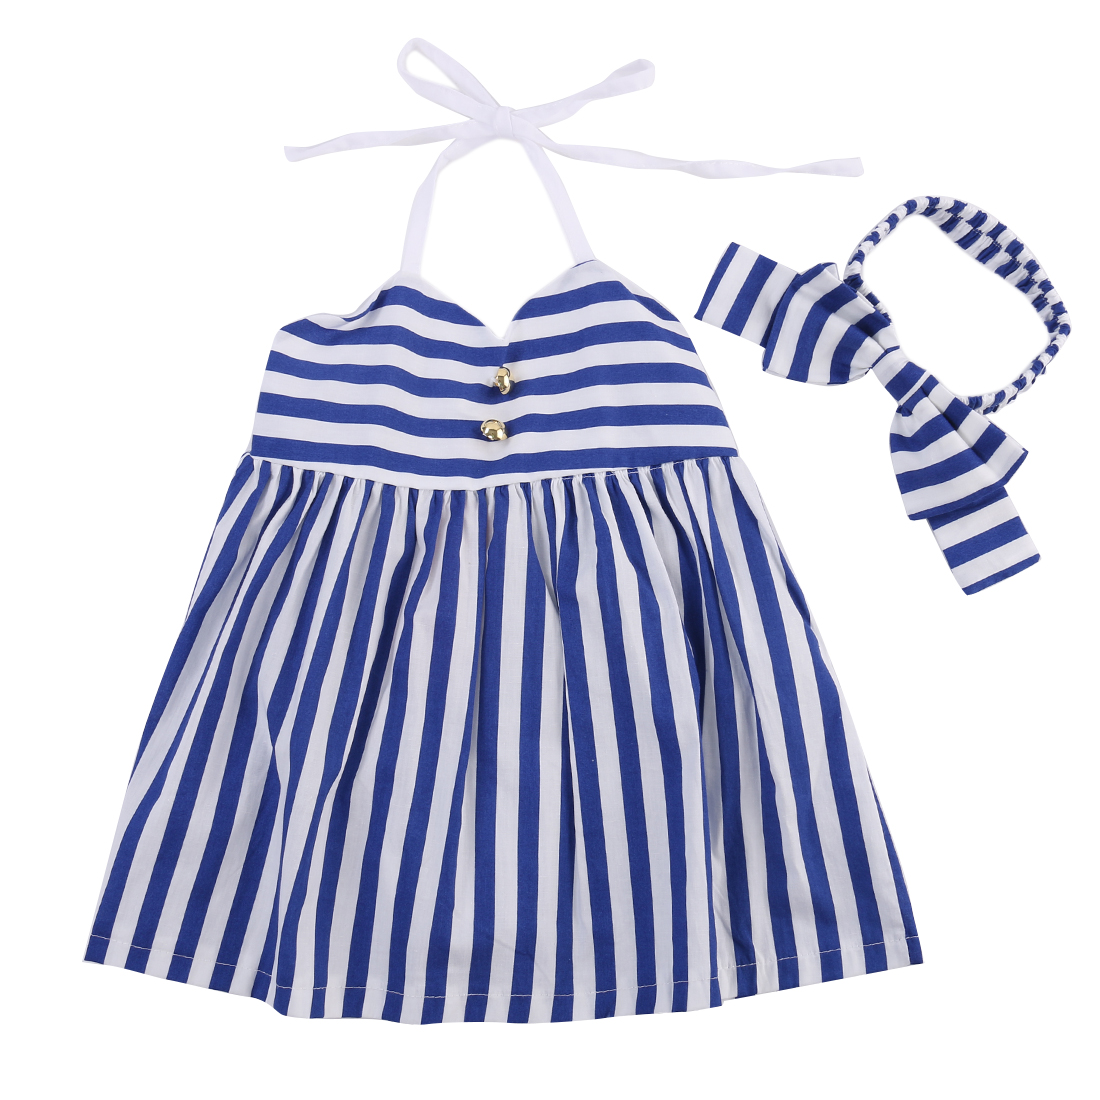 2016 Summer New Brand Dress Baby Girls Bow Dress Summer Toddler Children Clothing Kids Clothes Girls Striped Casual Dress ivory rustic girls dress country western party girls clothing lace baby clothes toddler flower girls dress with bow